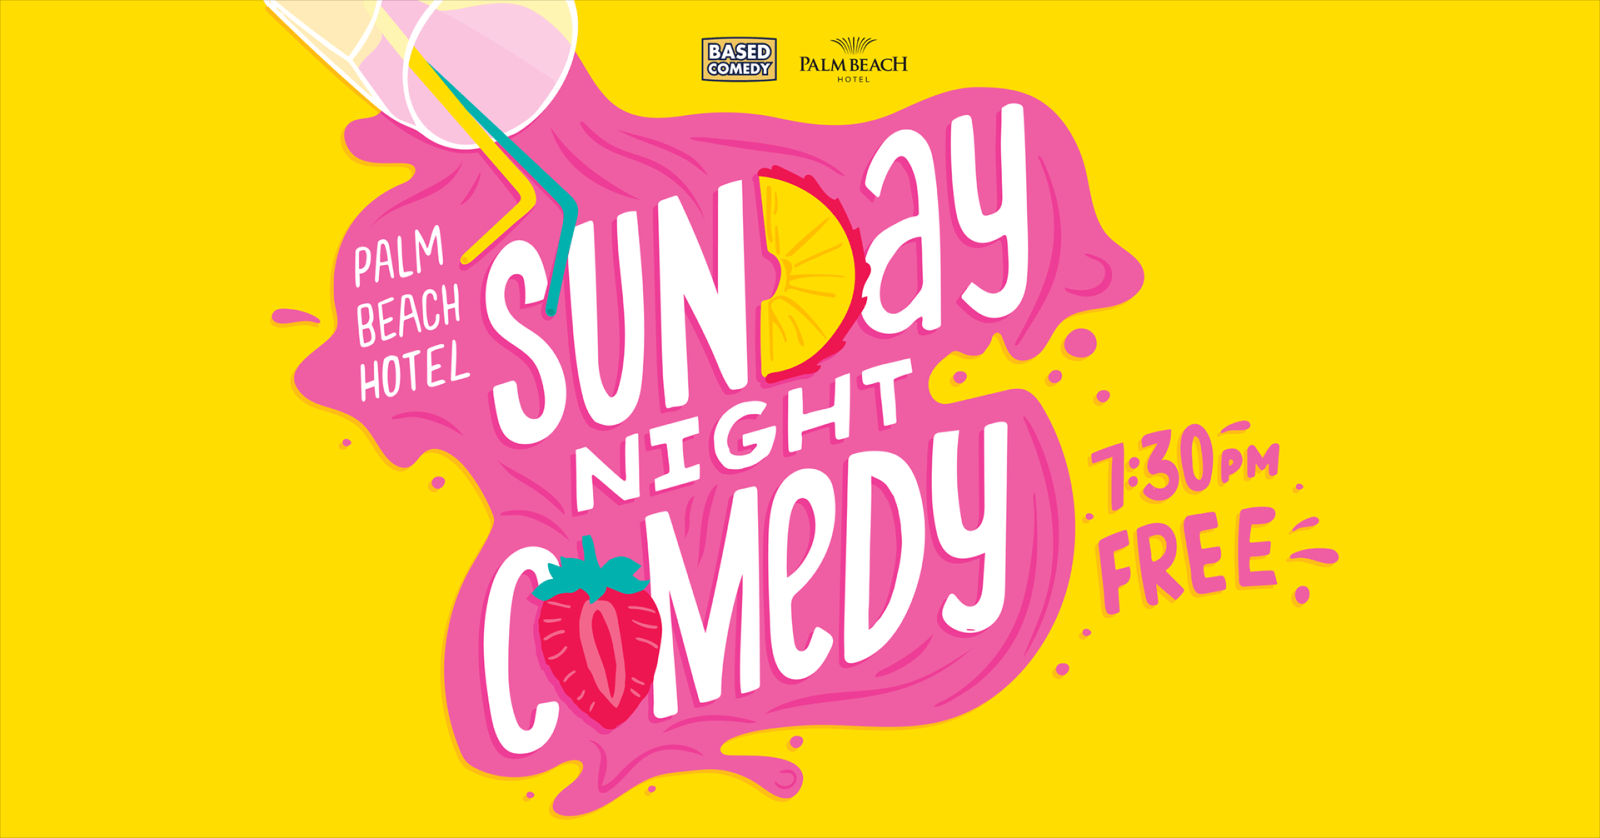 Live Shows: Sunday Night Comedy (Based Comedy) - Dec 08 -The Palm Beach Hotel